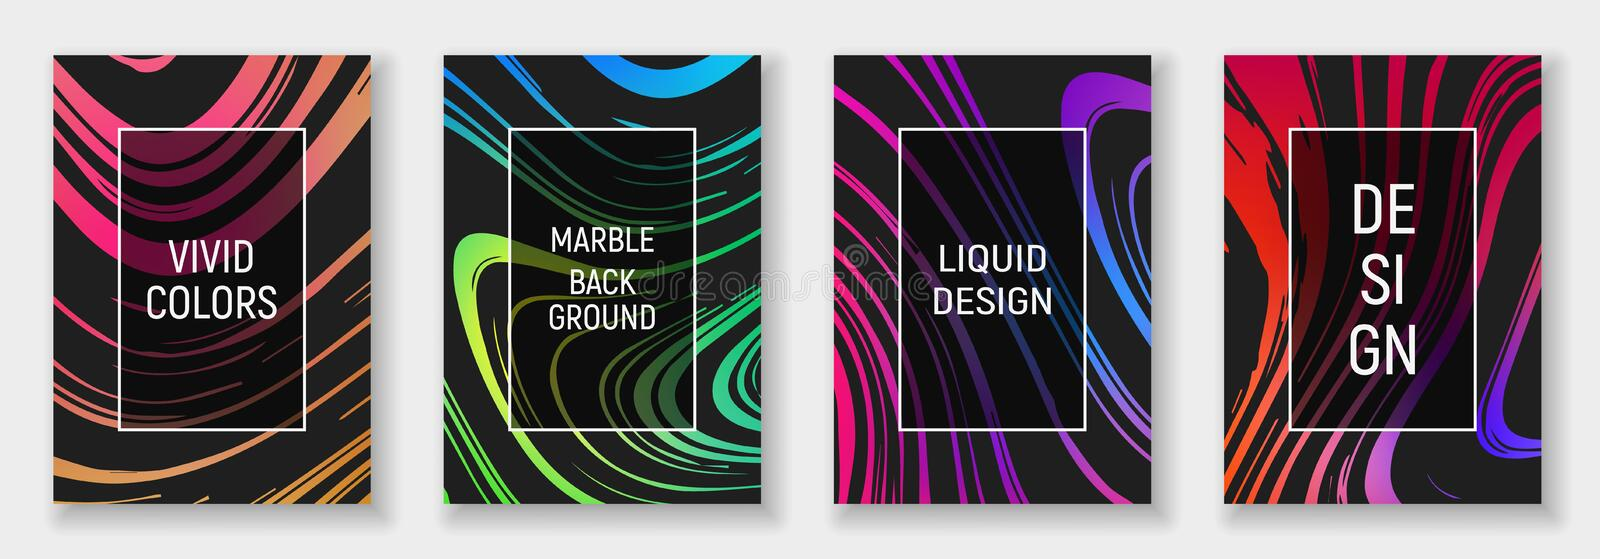 A4 abstract liquid marble illustration set. Vivid colors on black background. Vector design layout for banners stock illustration